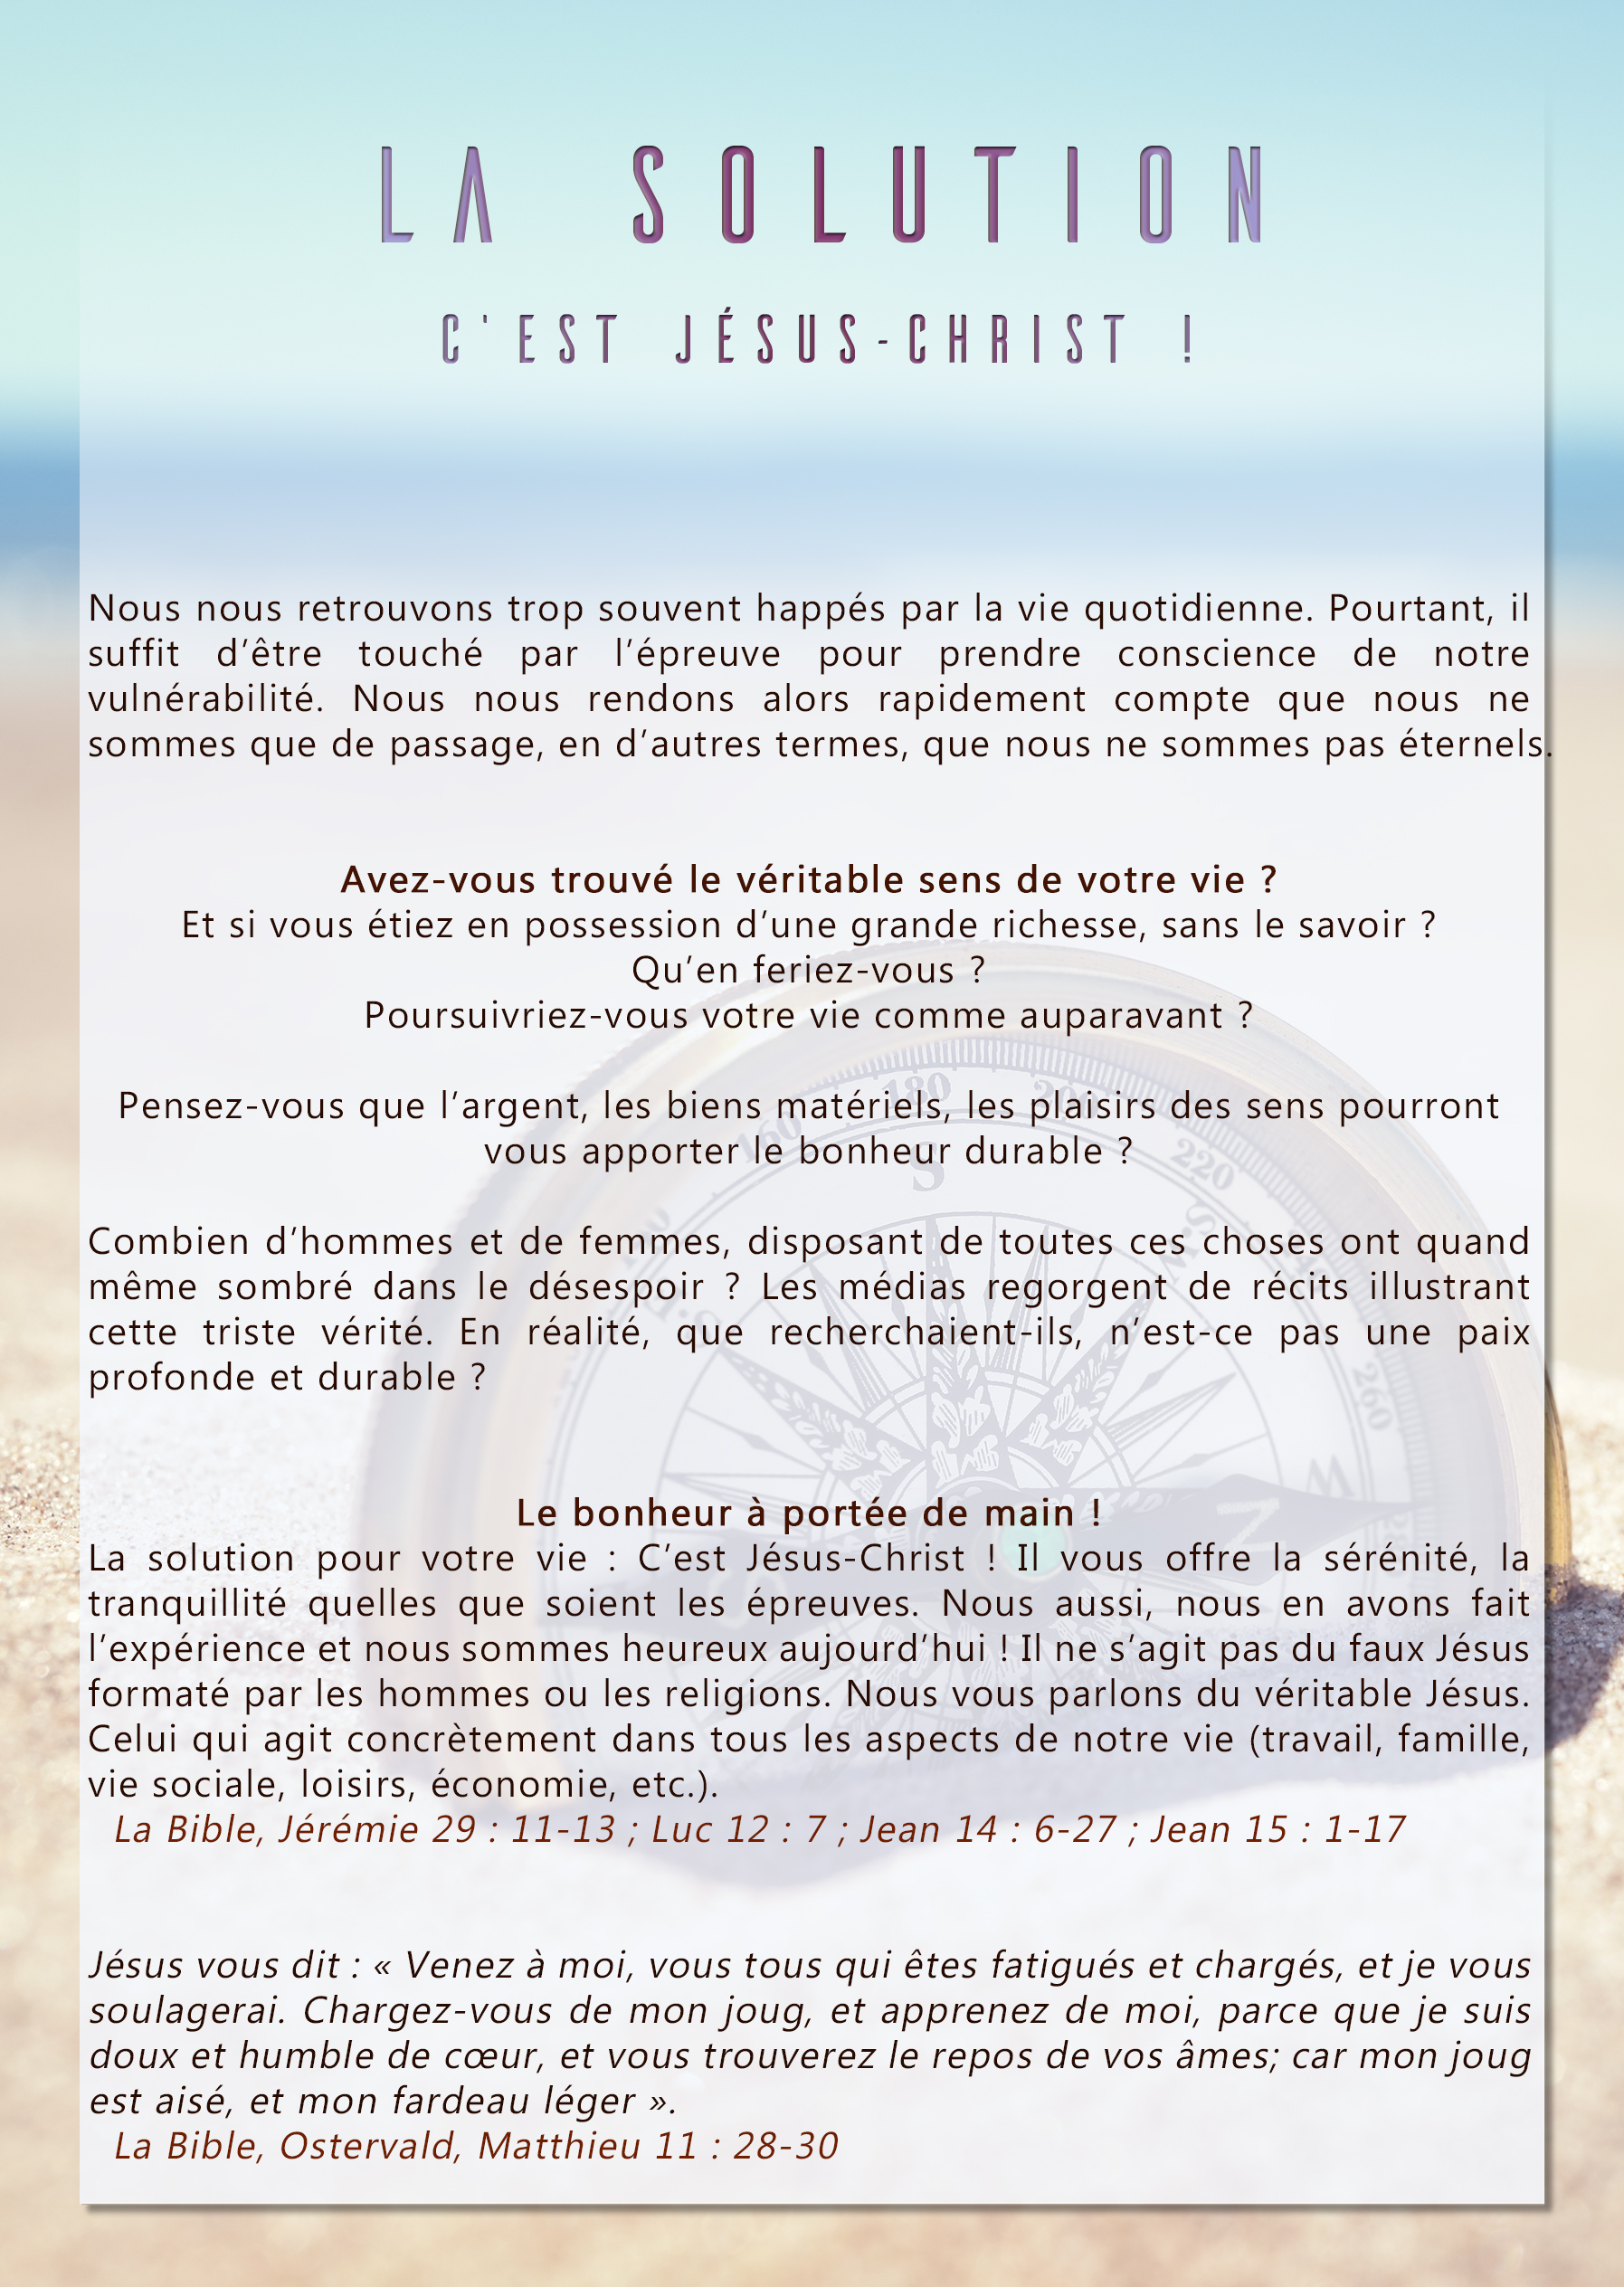 Flyer_-_La_solution_(océan)_recto_©Copyright_FranceBIBLE